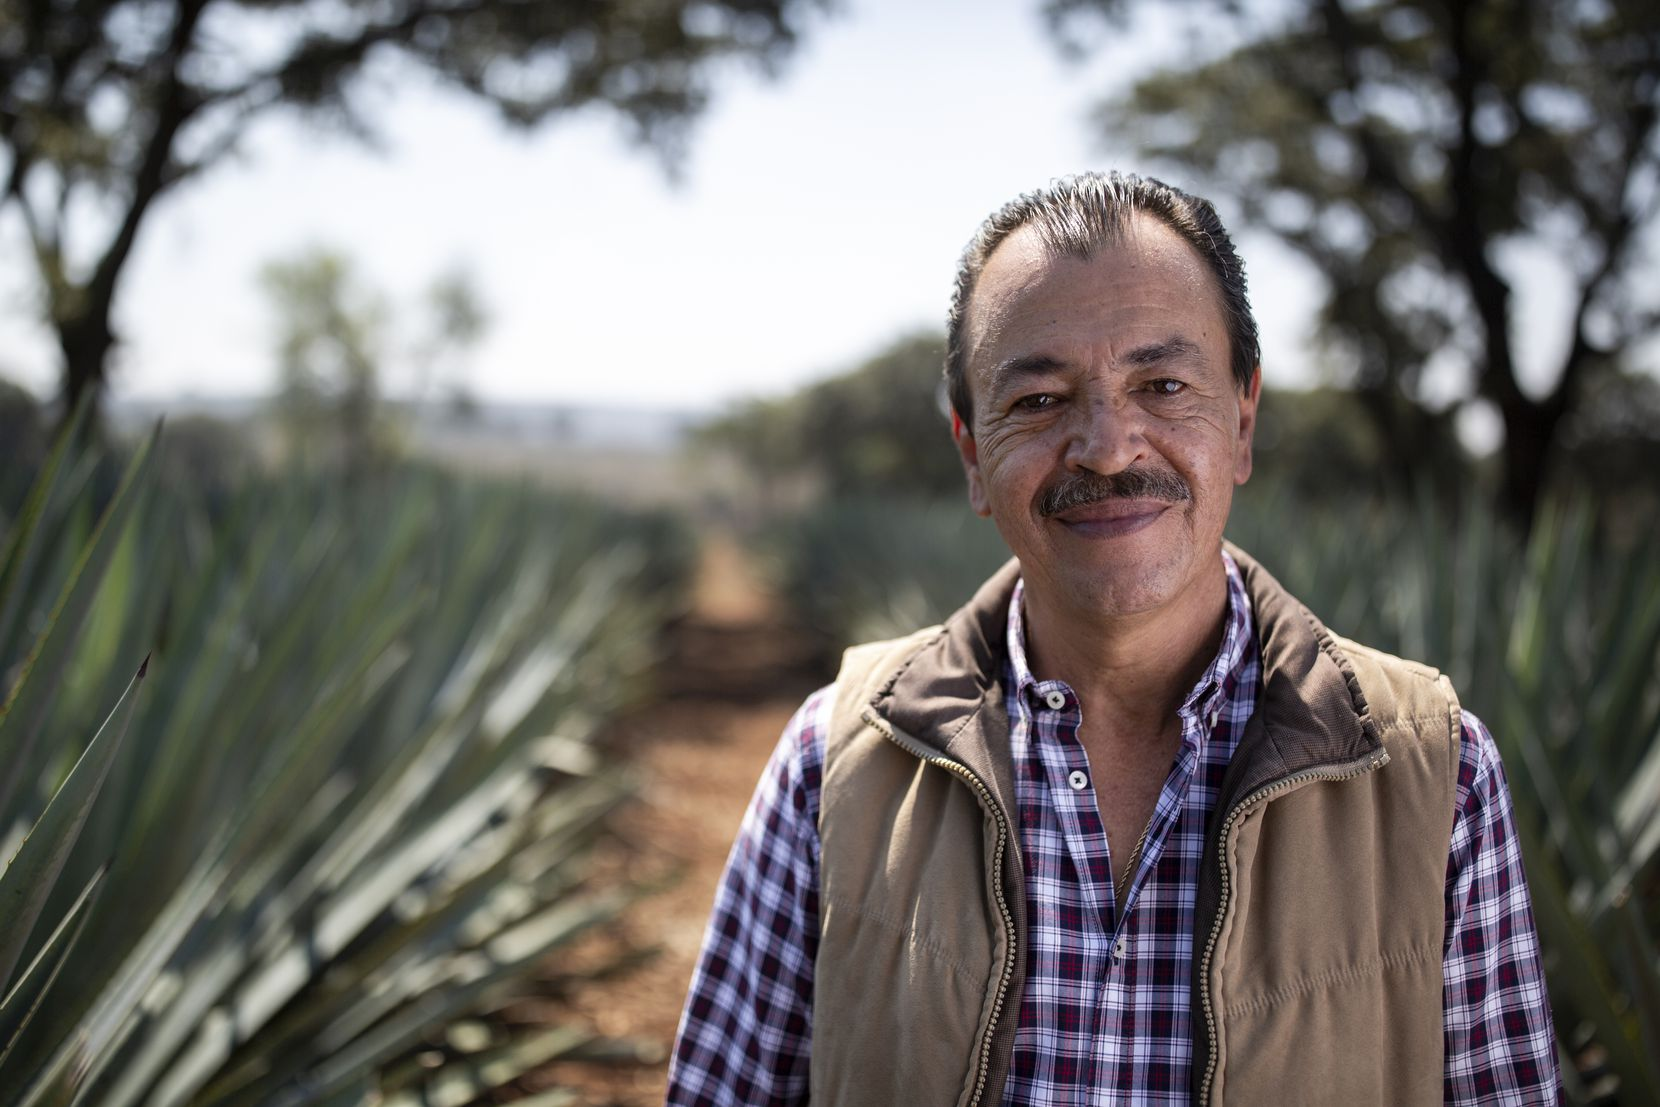 Carlos Camarena is master distiller at La Altena Distillery in the Jalisco highlands.